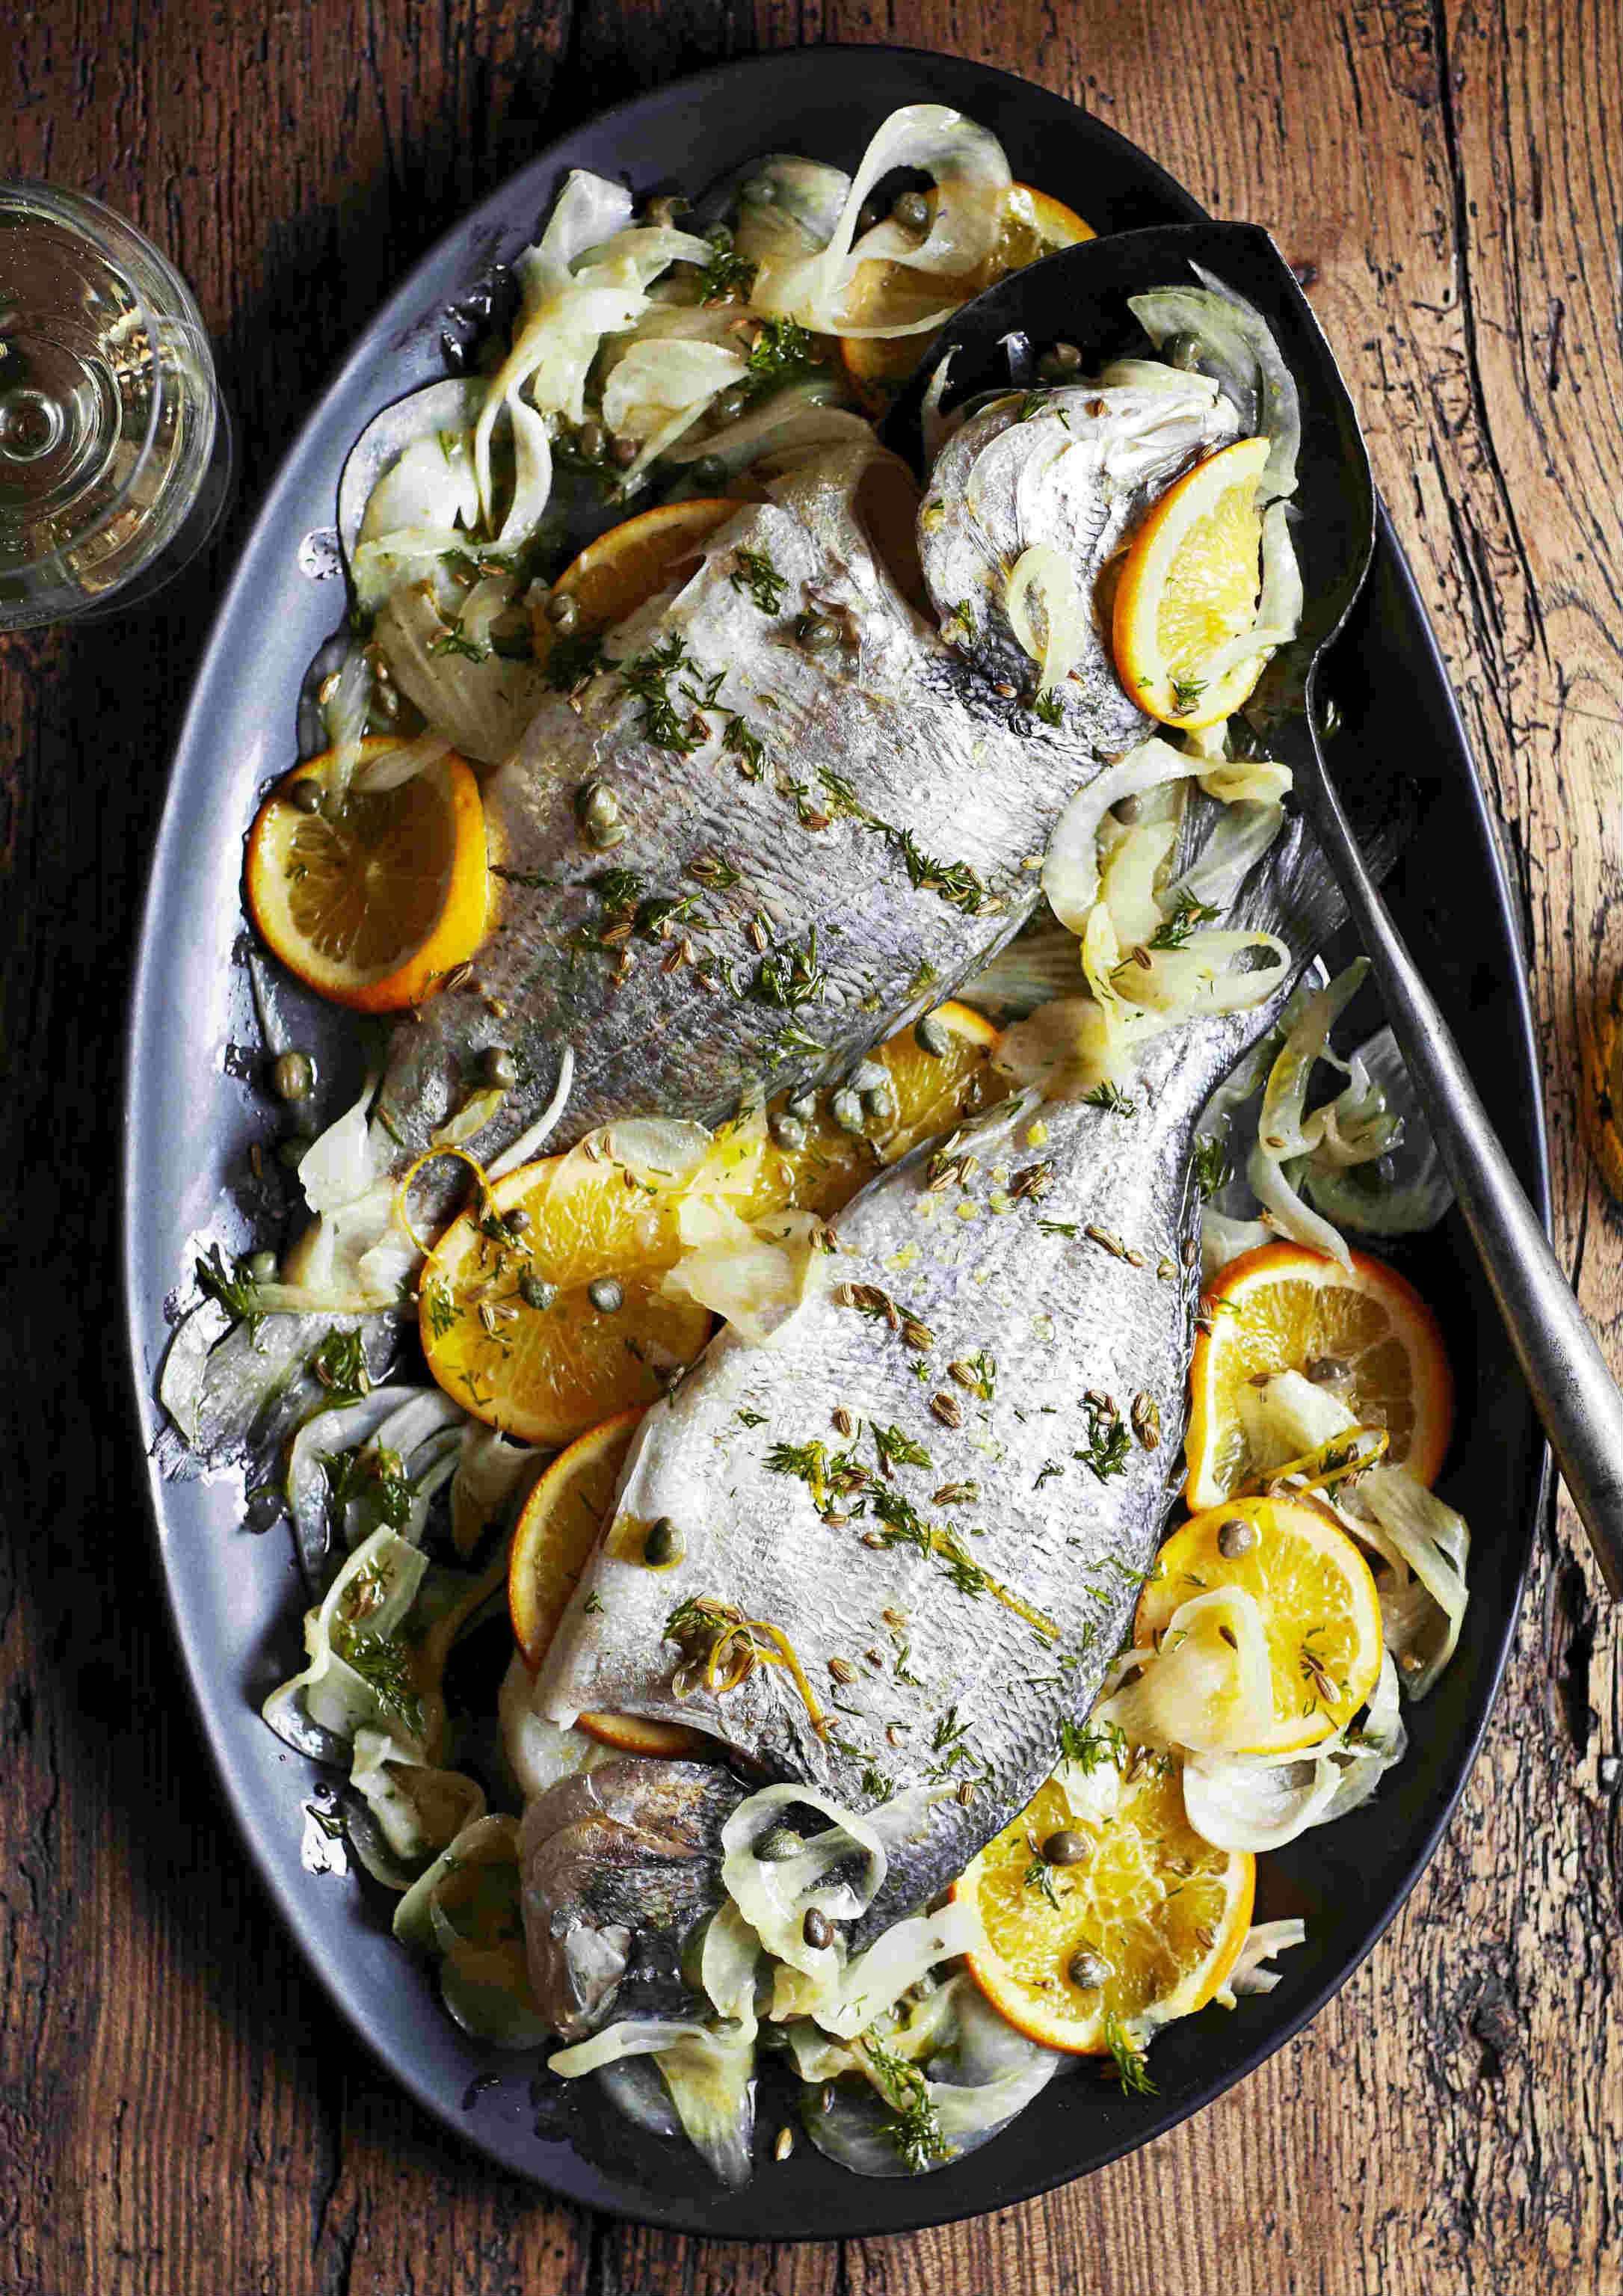 Roast fennel-stuffed bream with fennel seed and orange oil